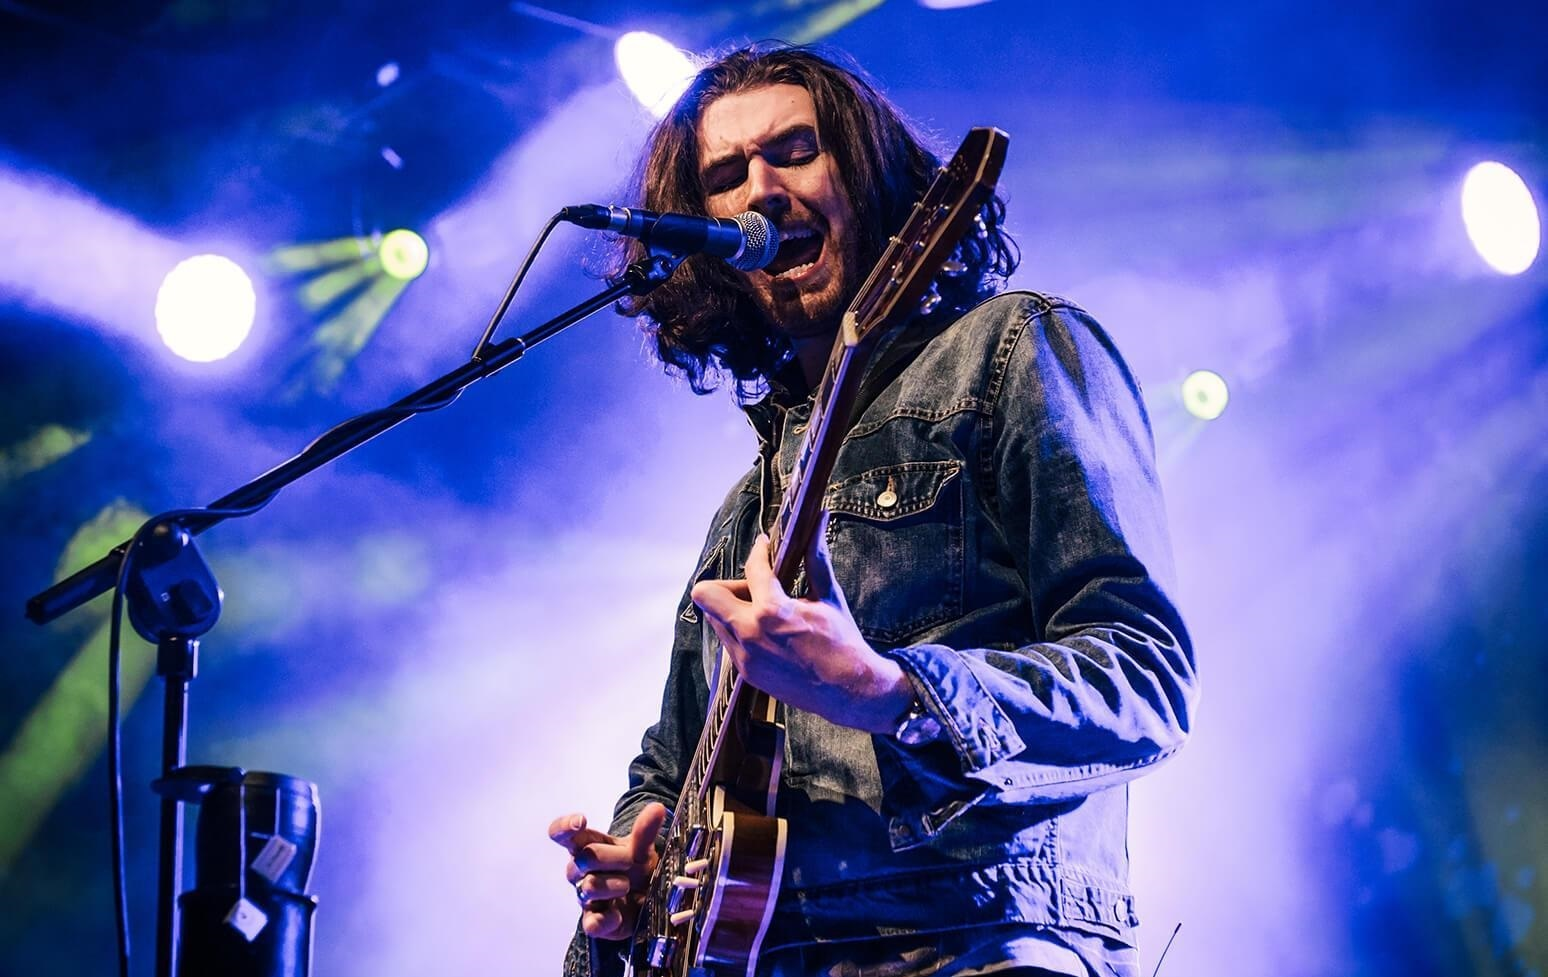 CONCERT - HOZIER IN BRUSSELS